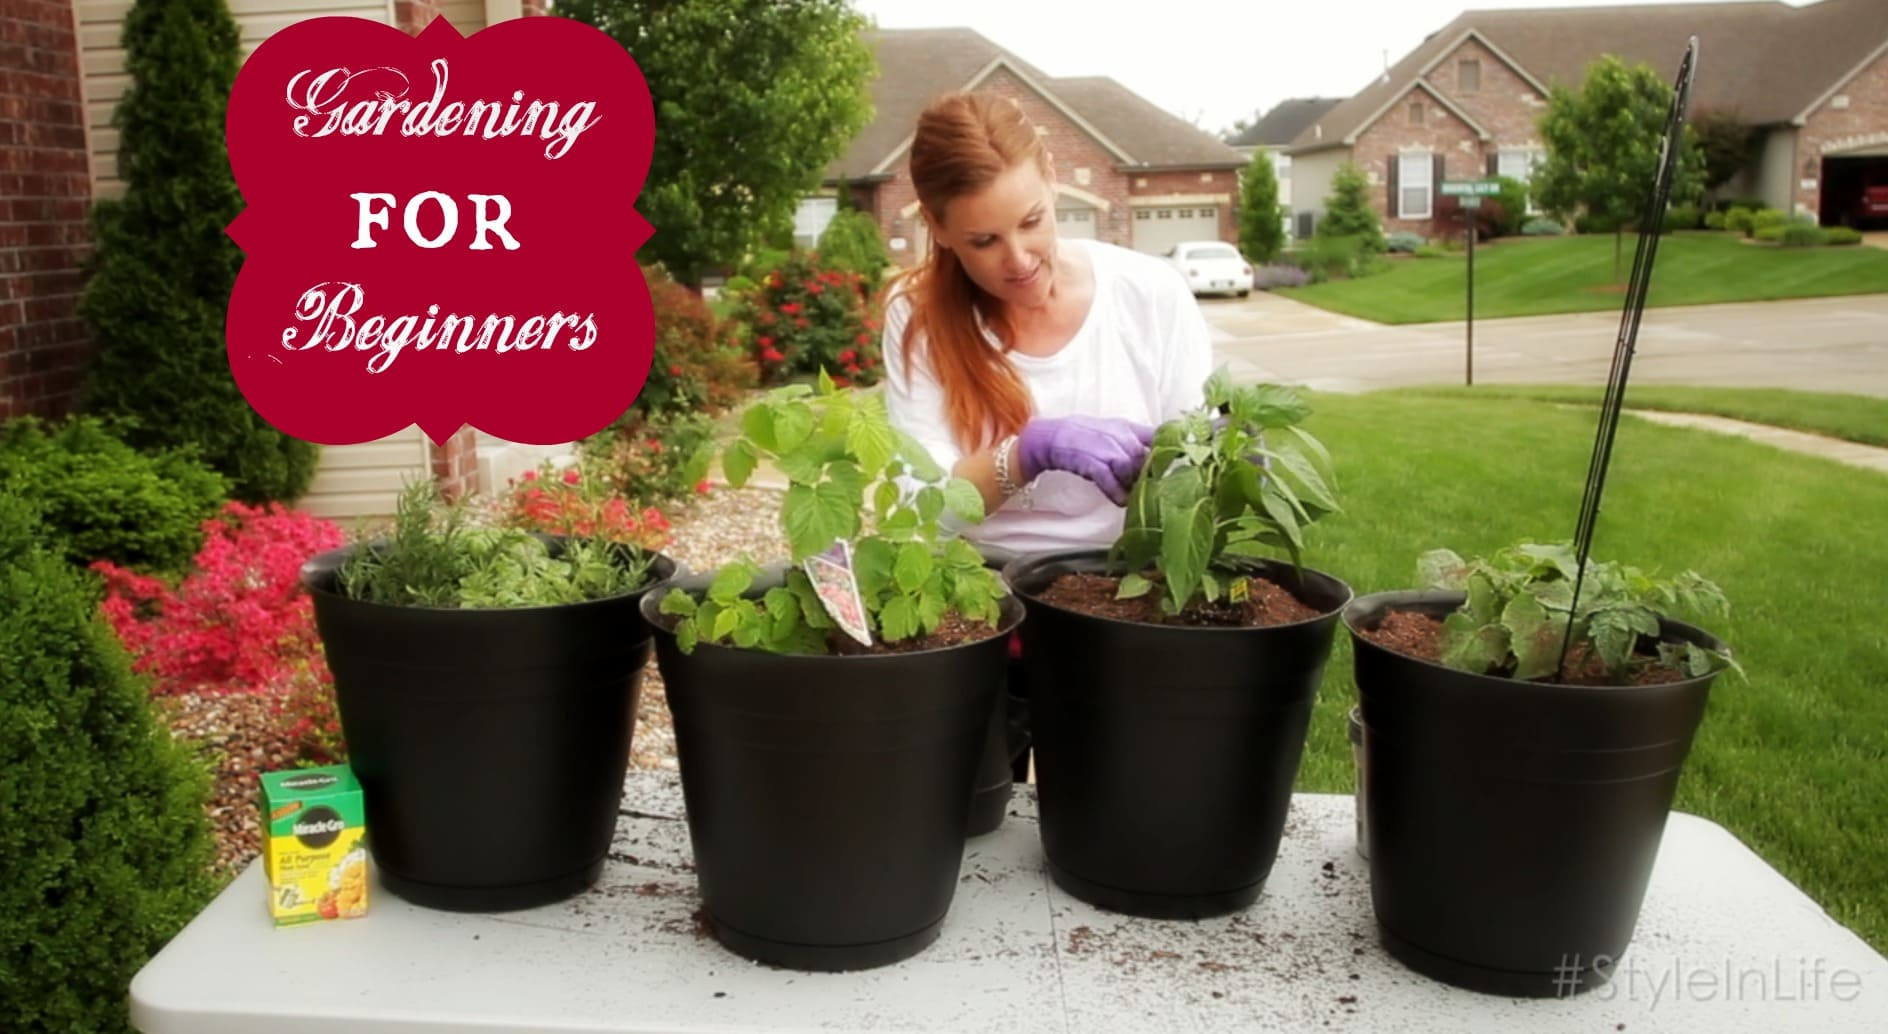 How To Plant A Vegetable Garden For Beginners Pretty